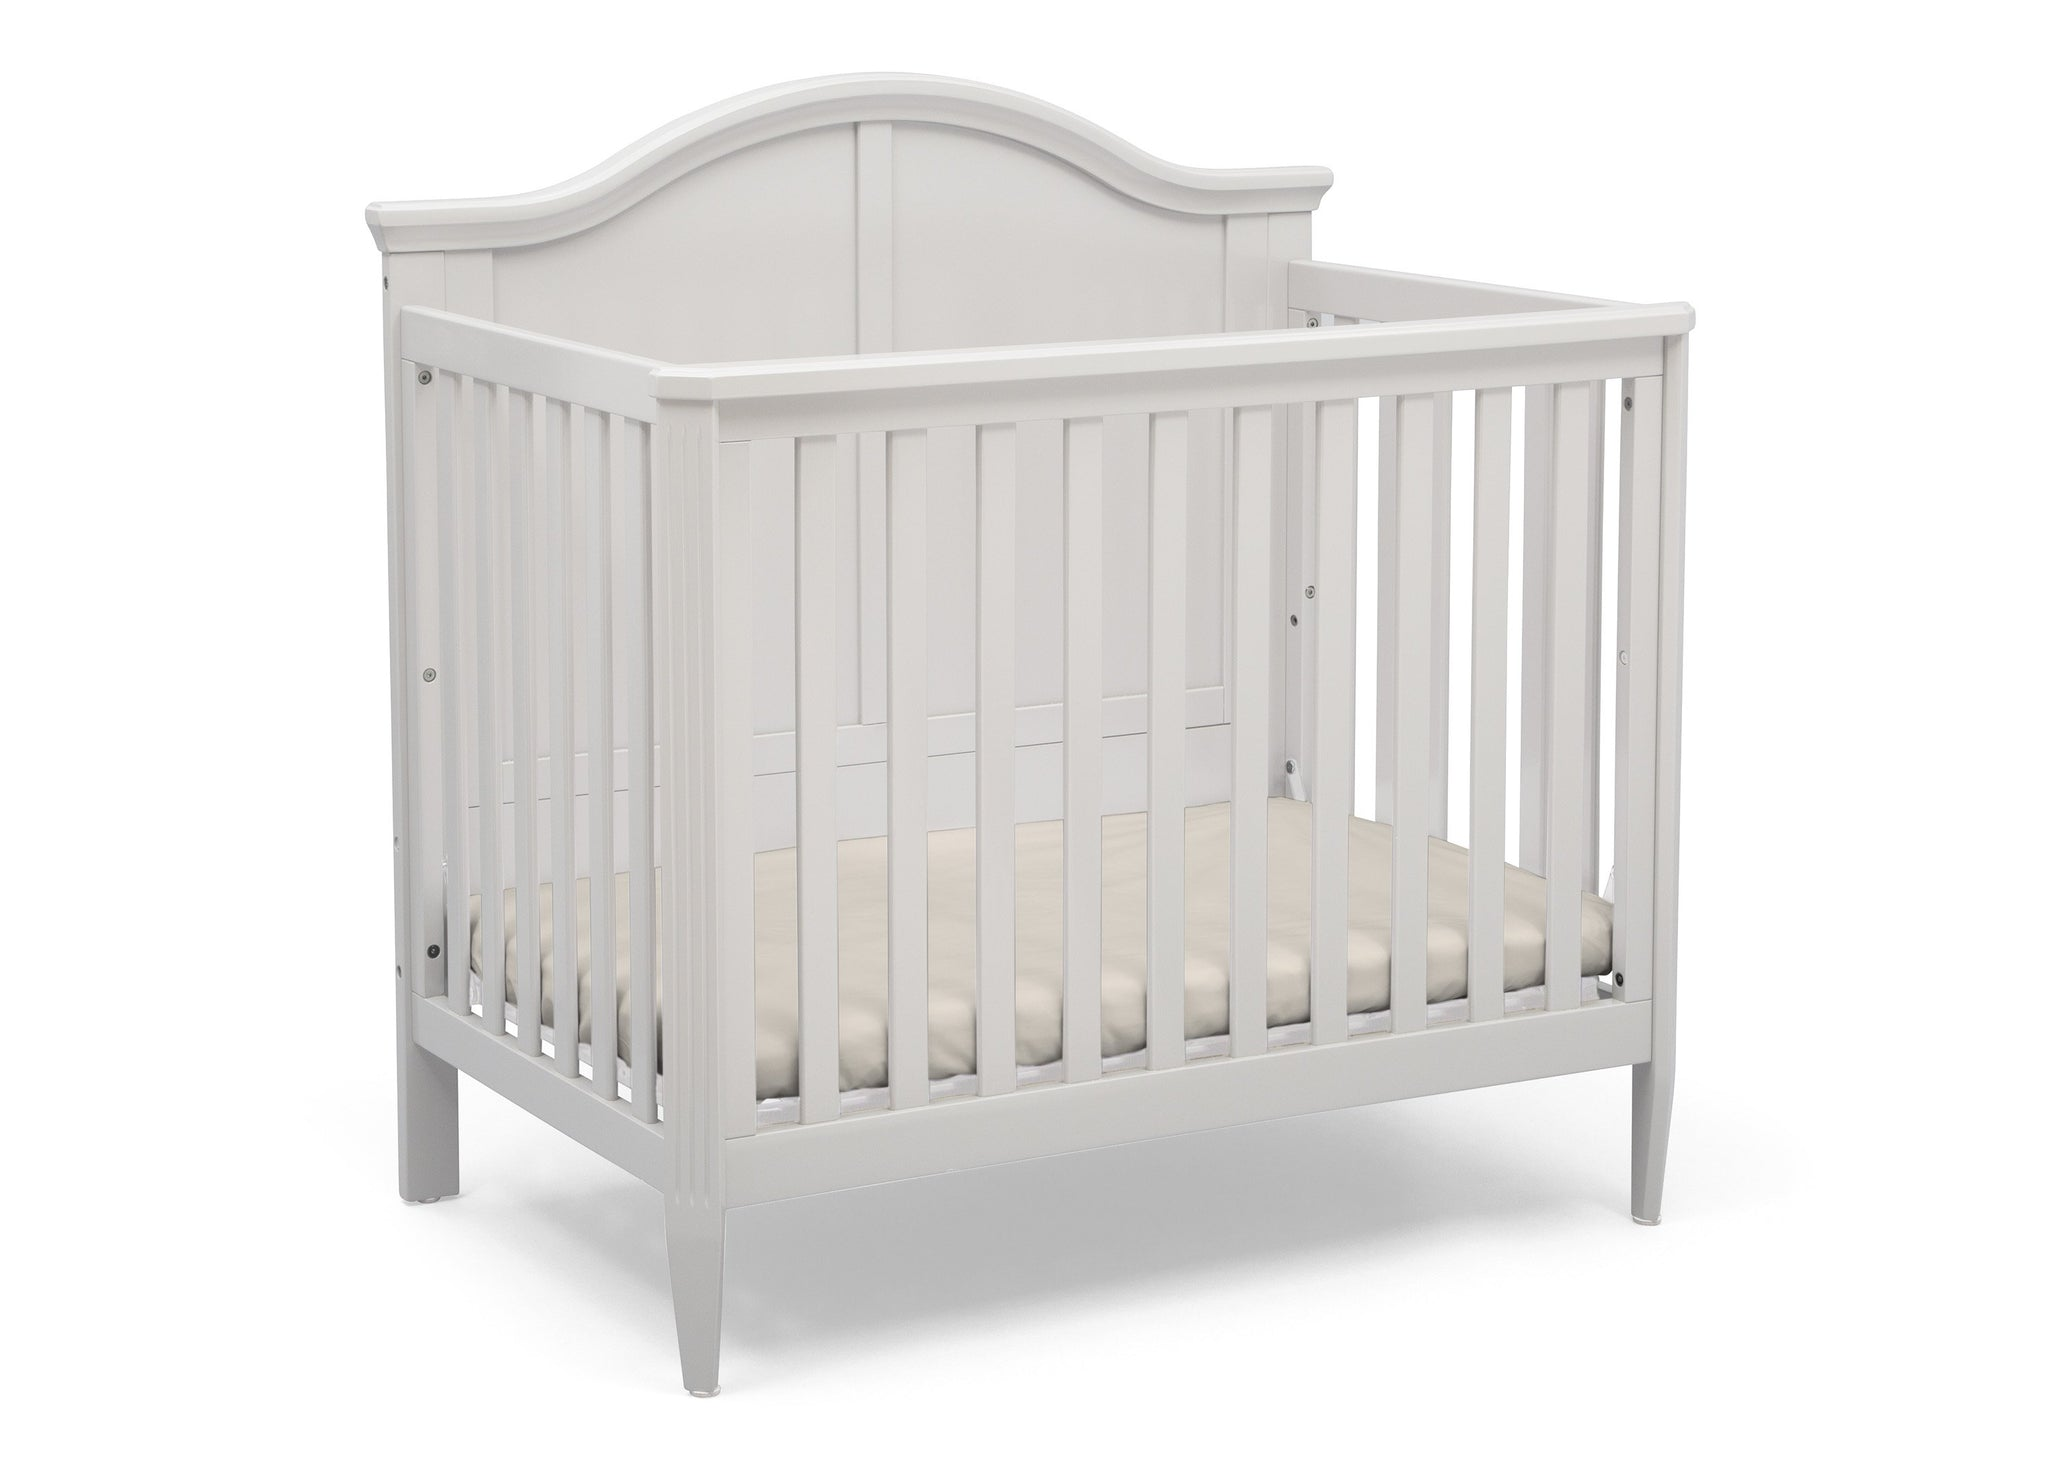 Delta Children Bianca White (130) Mini Convertible Baby Crib with Mattress and 2 Sheets Right Crib Silo View